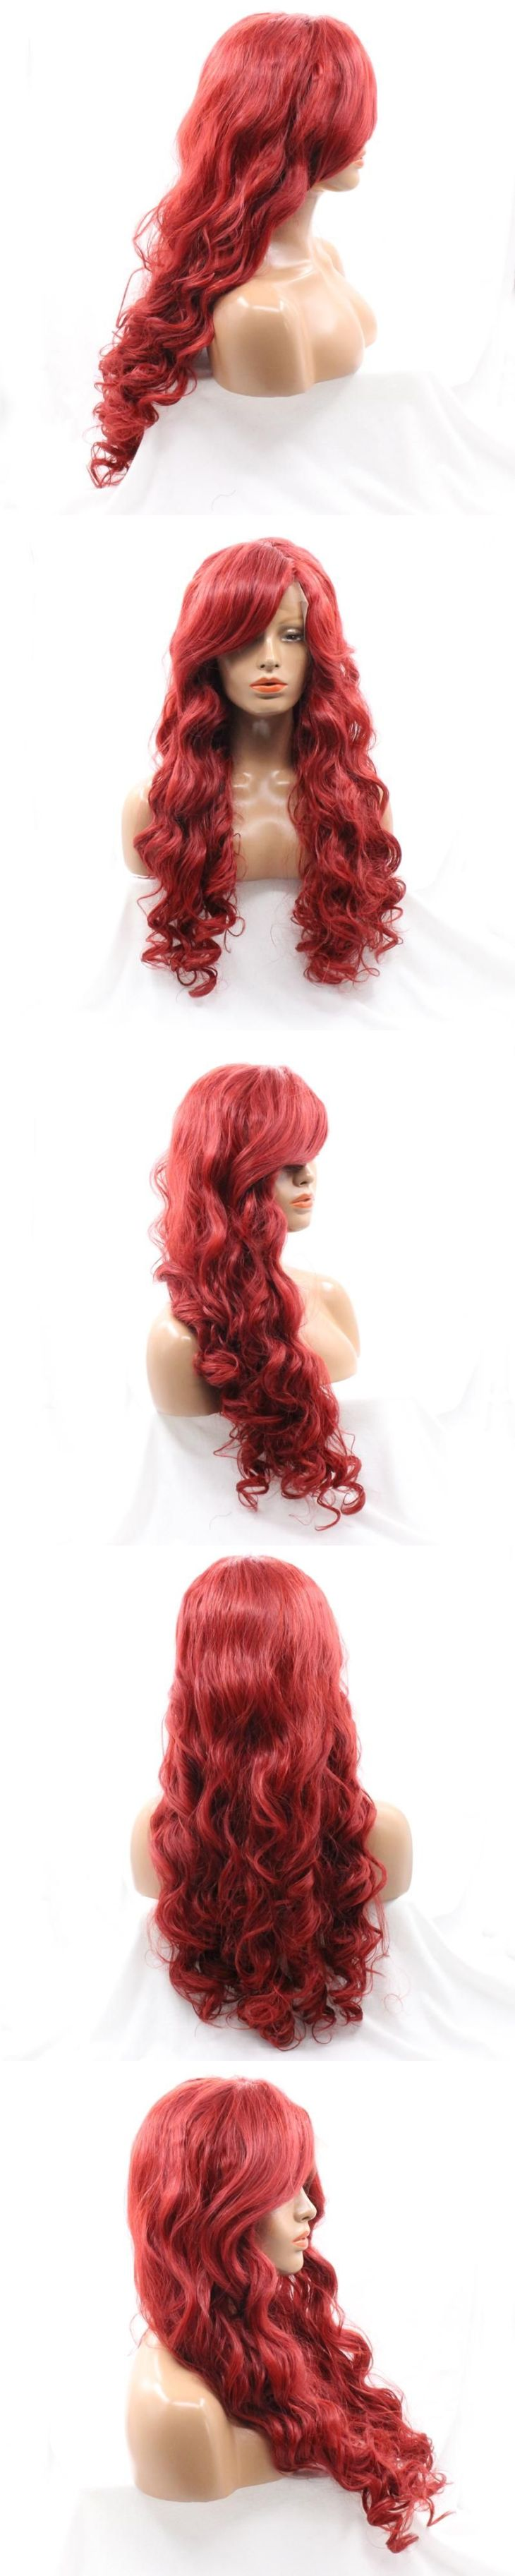 Real Japanese Fiber Loose Curly Synthetic Lace Front Wigs